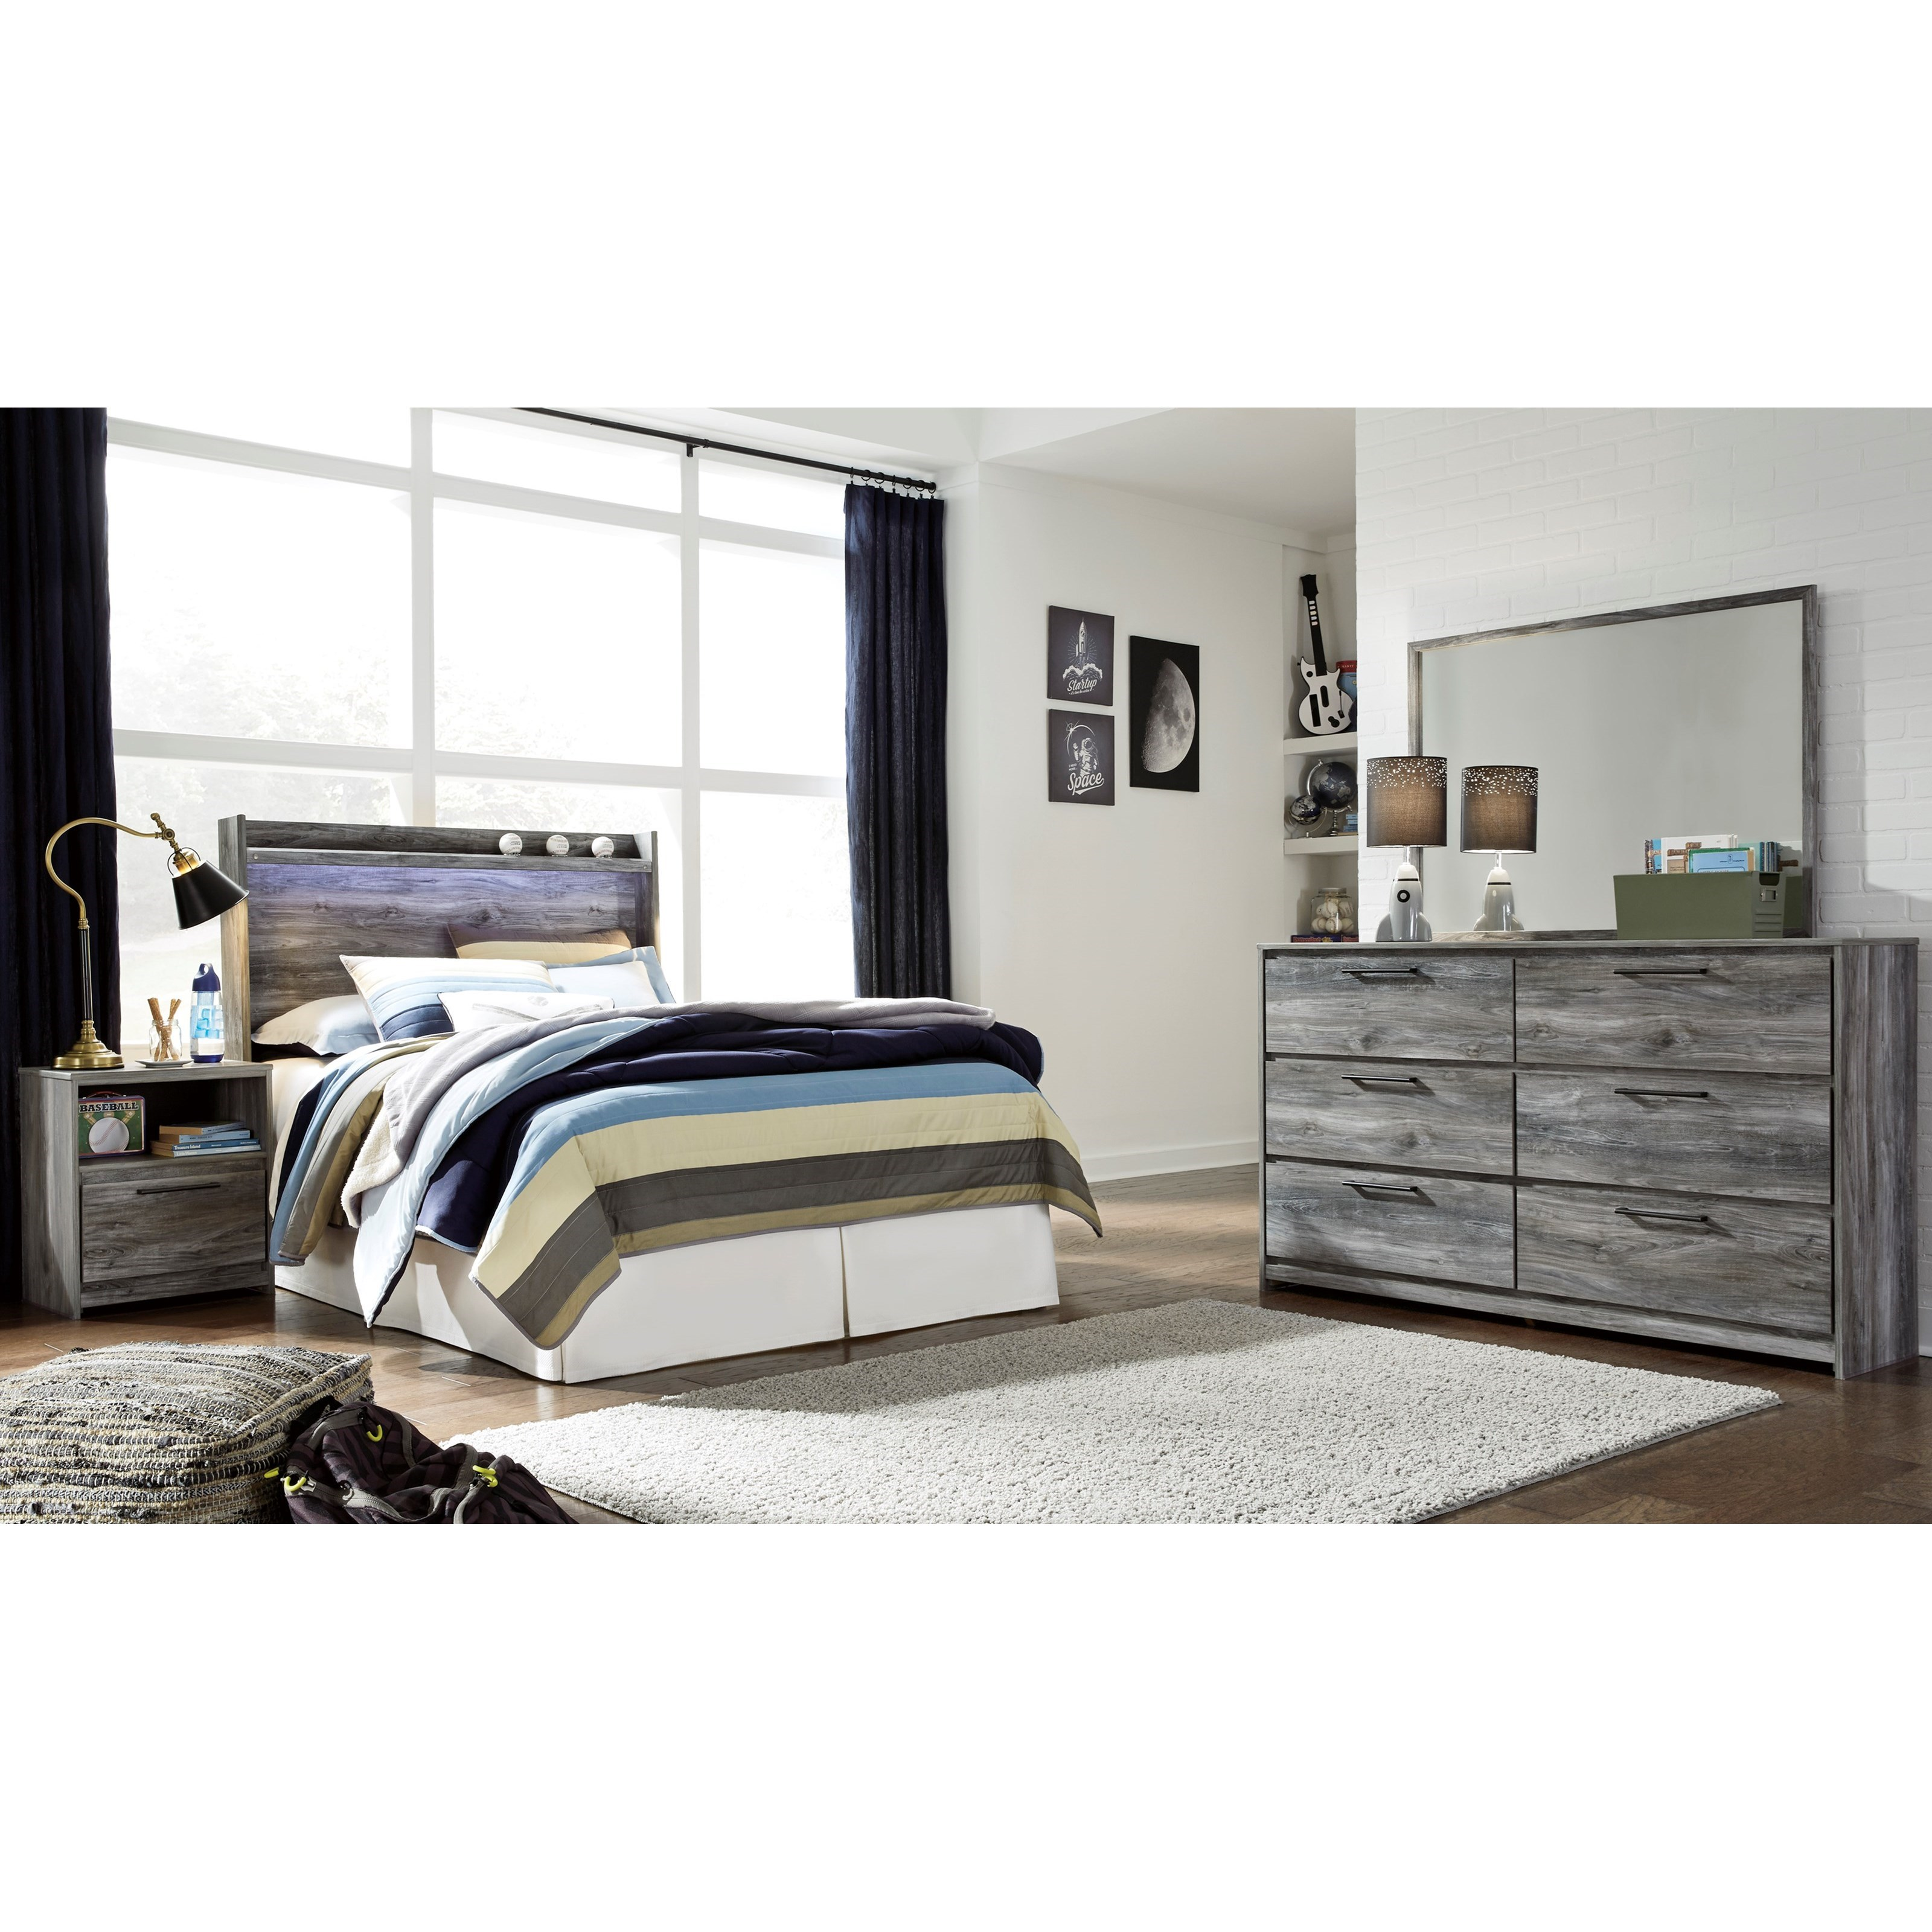 Baystorm Full Bedroom Group by Ashley (Signature Design) at Johnny Janosik